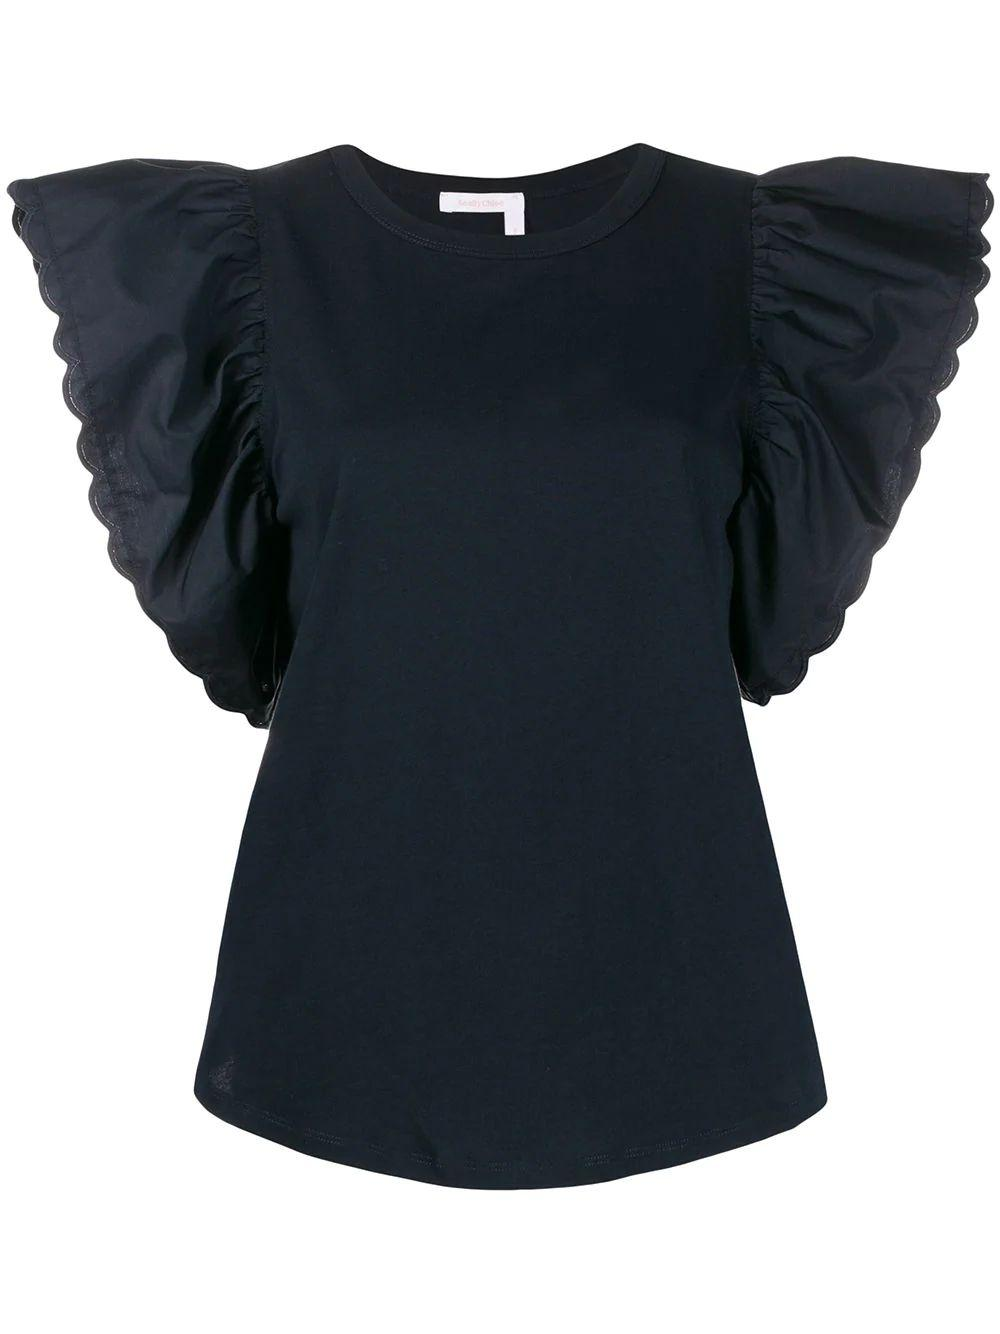 Emb Tee With Oversized Ruffle Sleeve Item # CHS20SJH43081